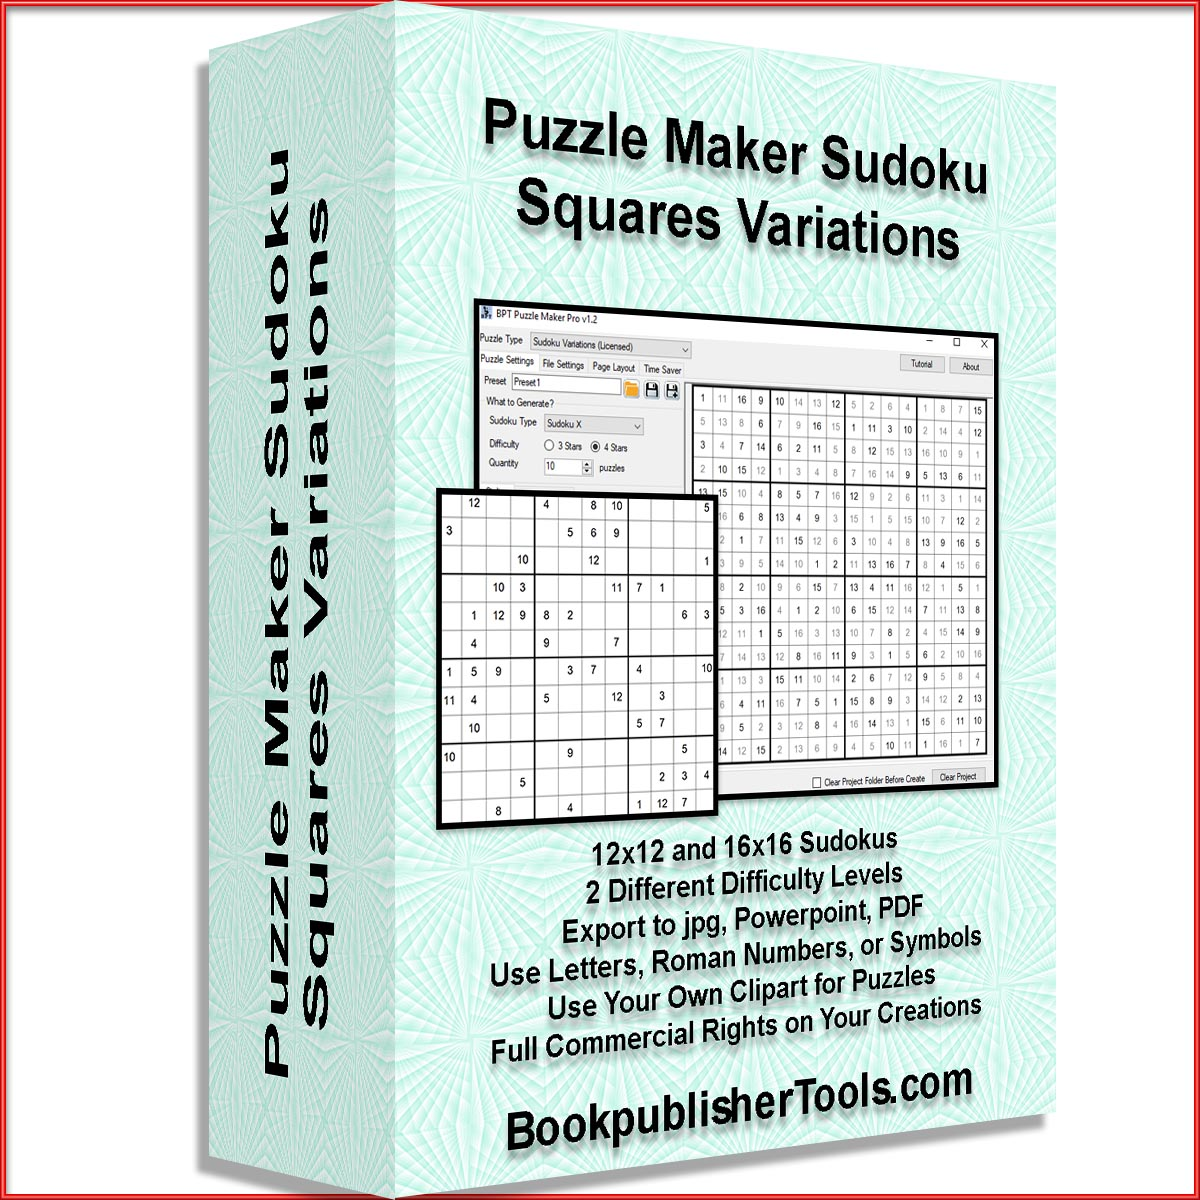 Puzzle Maker Pro Sudoku Variations | Designing for Print on Demand